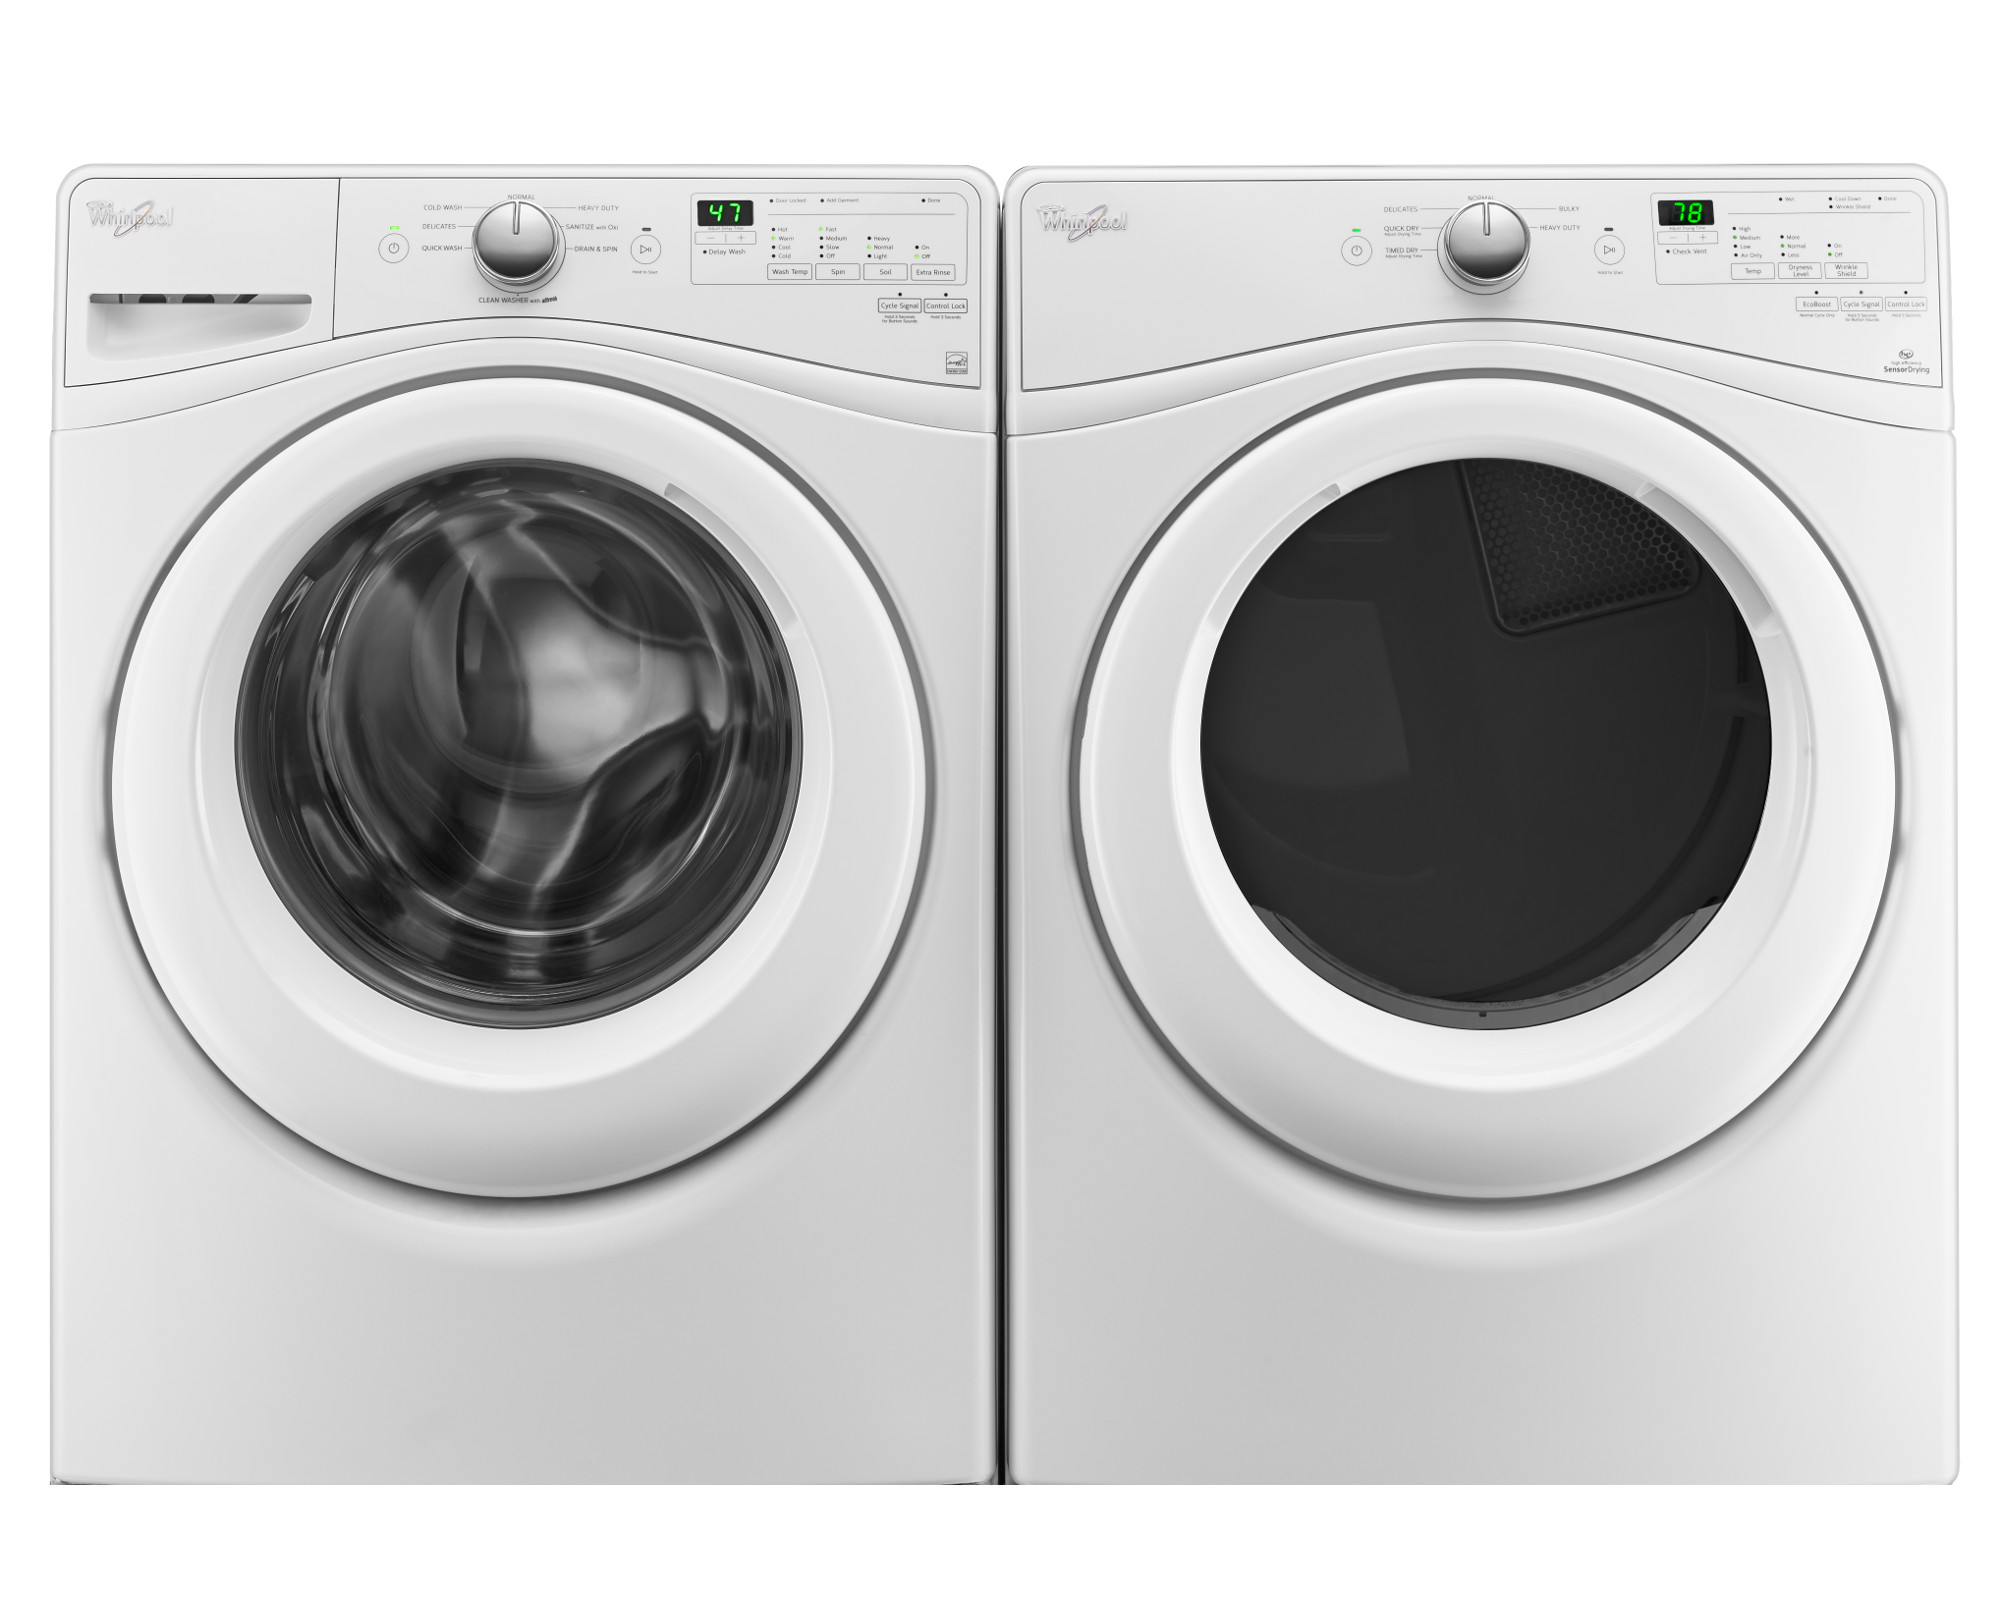 Whirlpool WGD75HEFW 7.4 cu. ft. Gas Dryer w/ Quick Dry Cycle - White